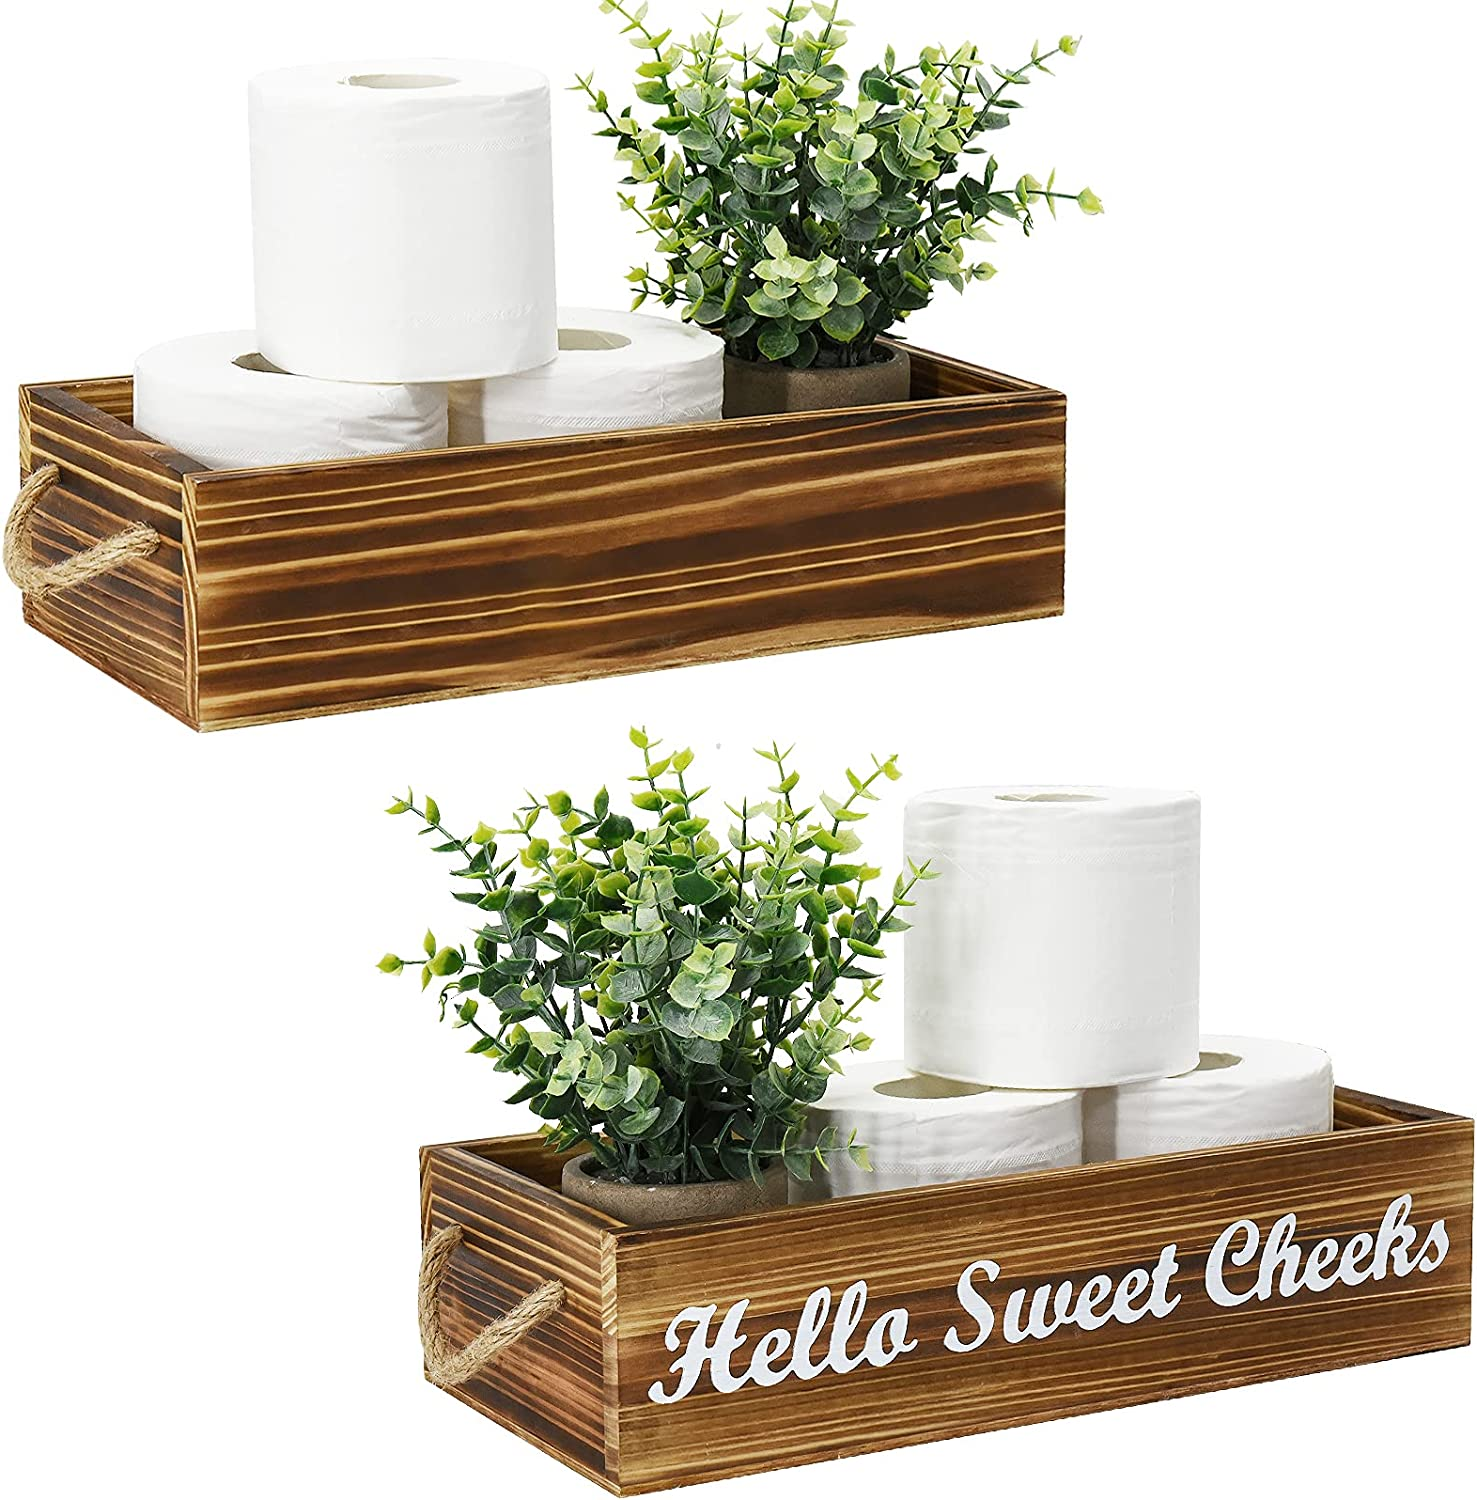 Bathroom Decor Box 2 Sides Funny Toilet Paper Holder Wood Tank Box Paper Storage Basket with Rope Handle Over Toilet Rustic Bathroom Paper Organizer Box with Funny Sign Farmhouse Home Decor Box